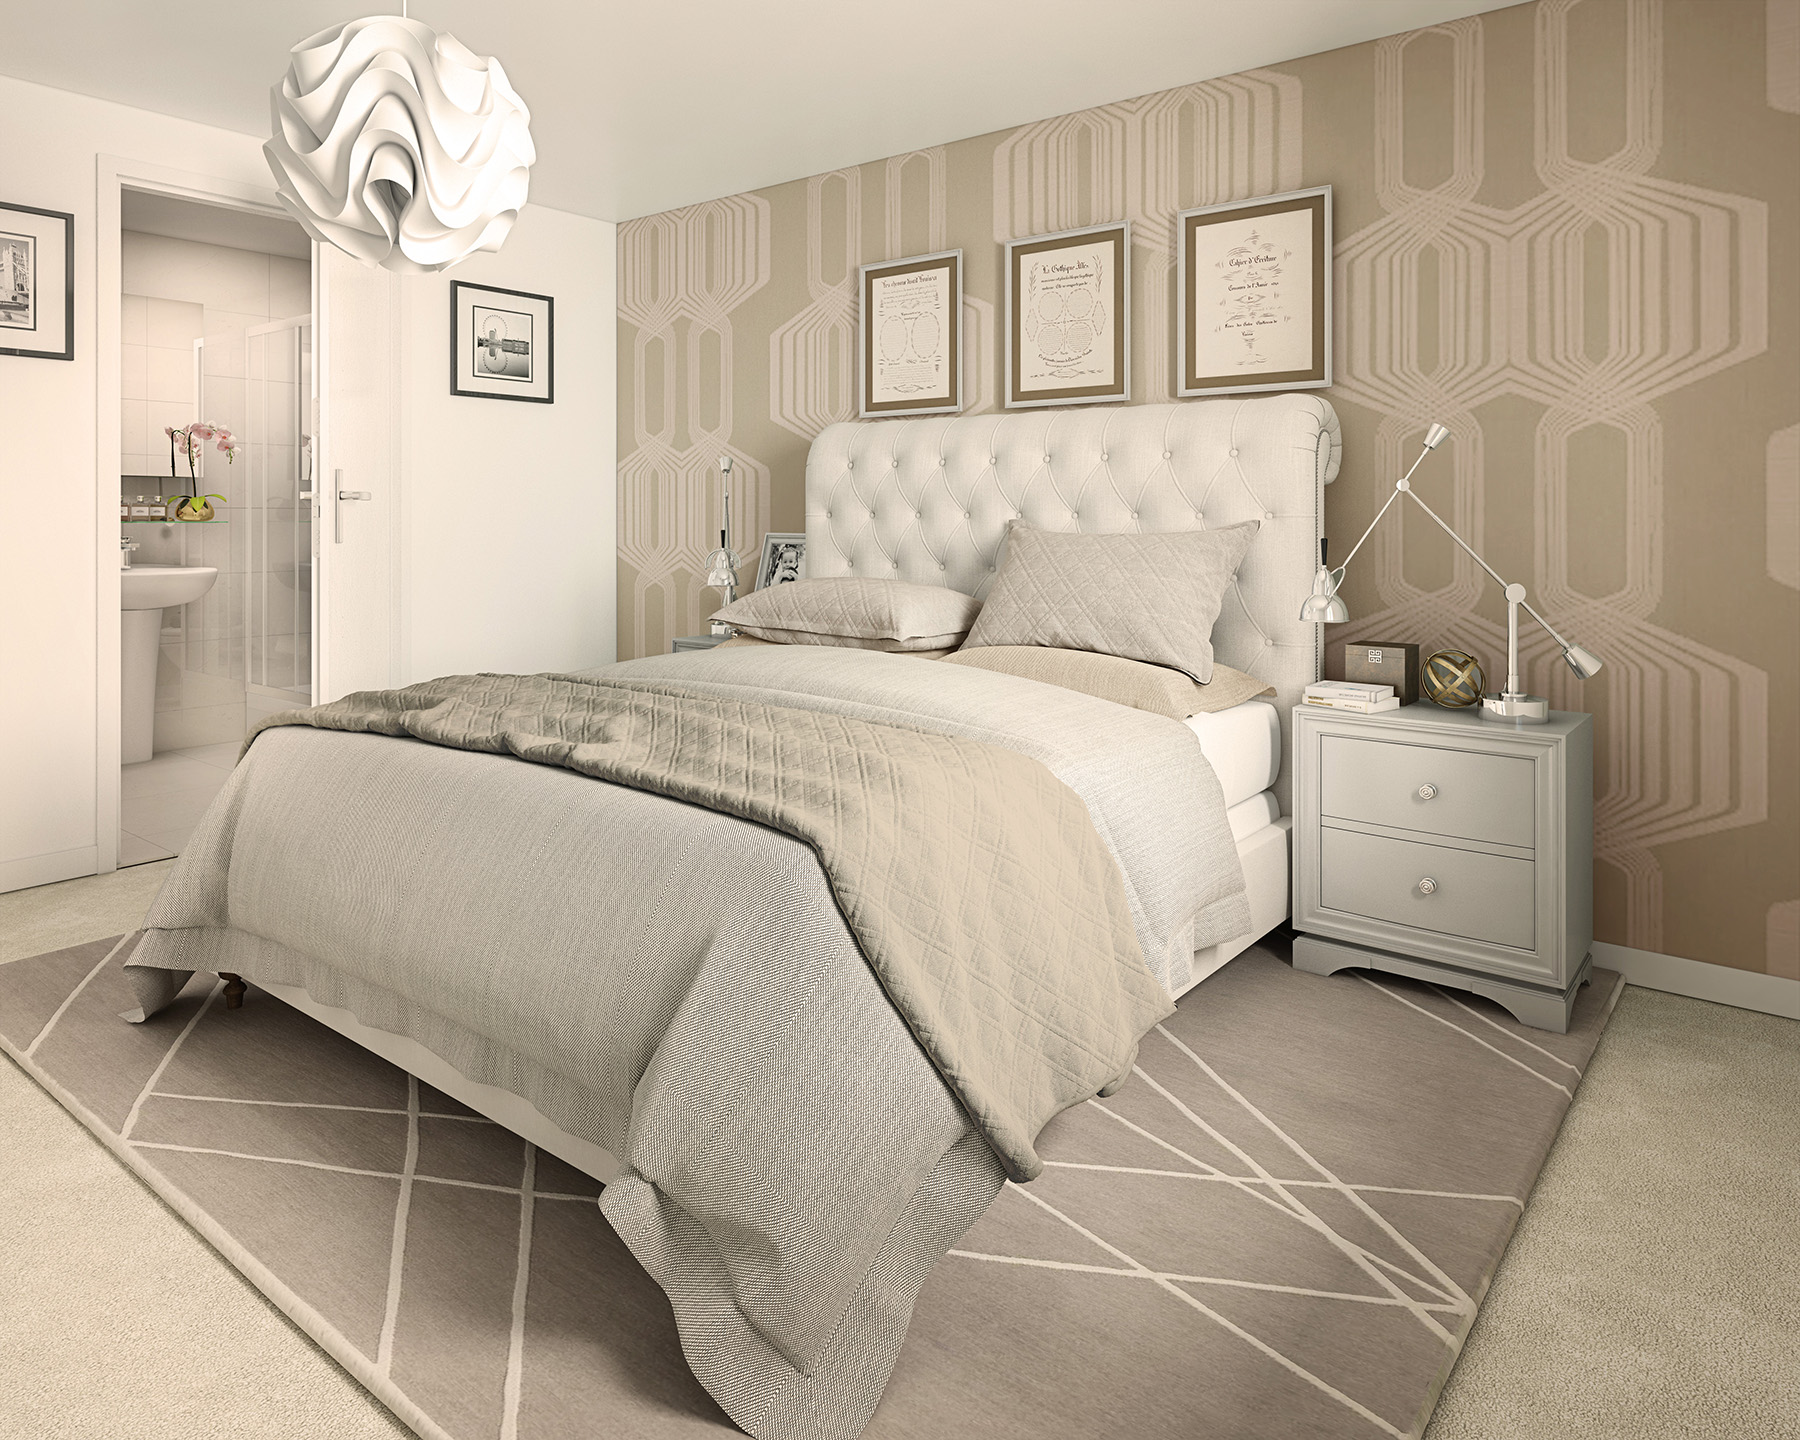 Generic_Type2_Master_Bedroom